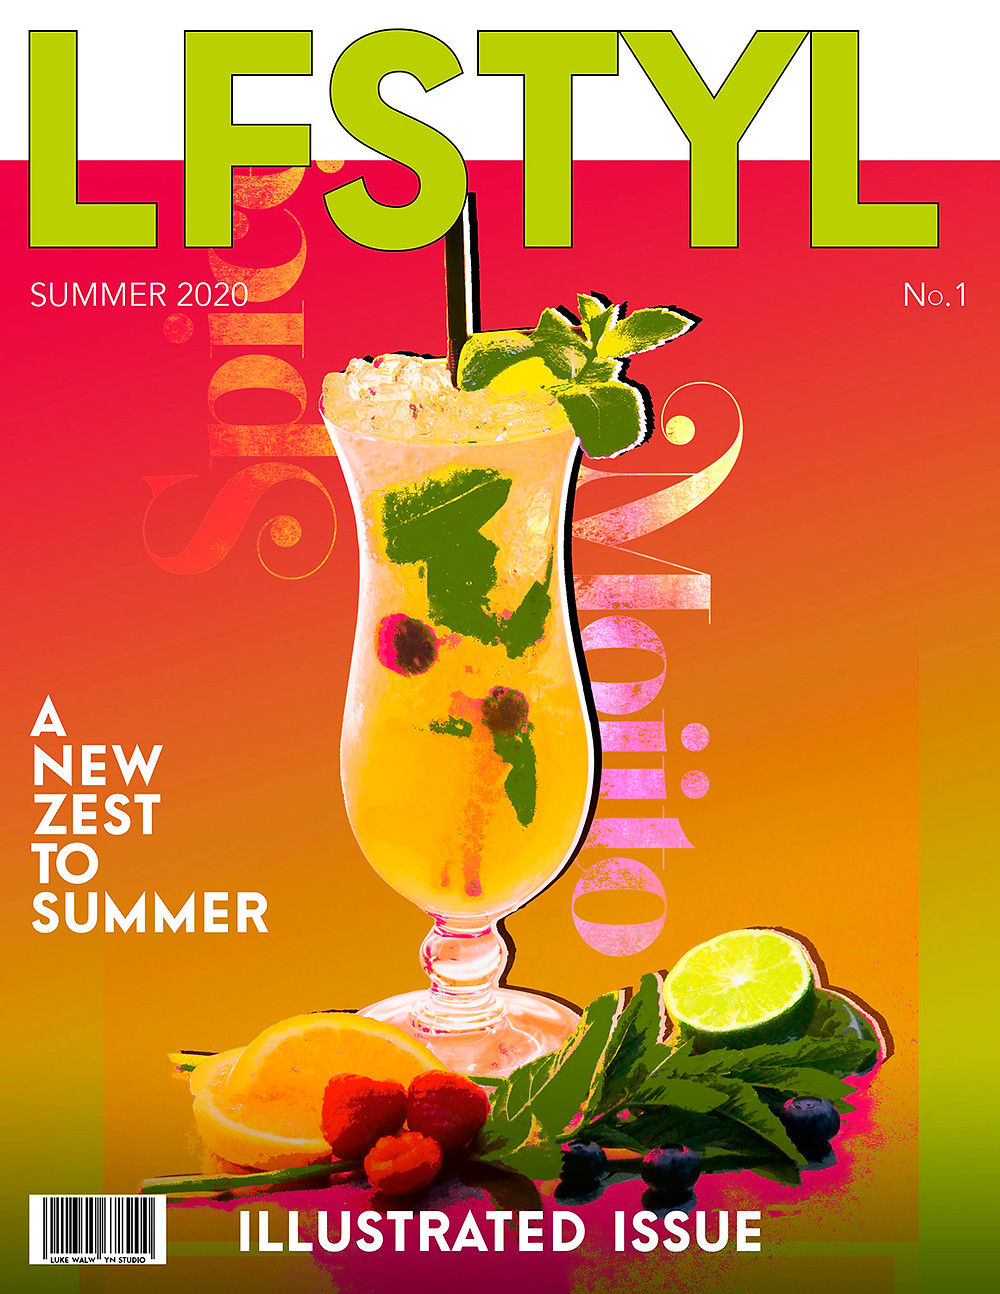 Magazine front cover depicting Spiced Mojito cocktail against vibrant orange background